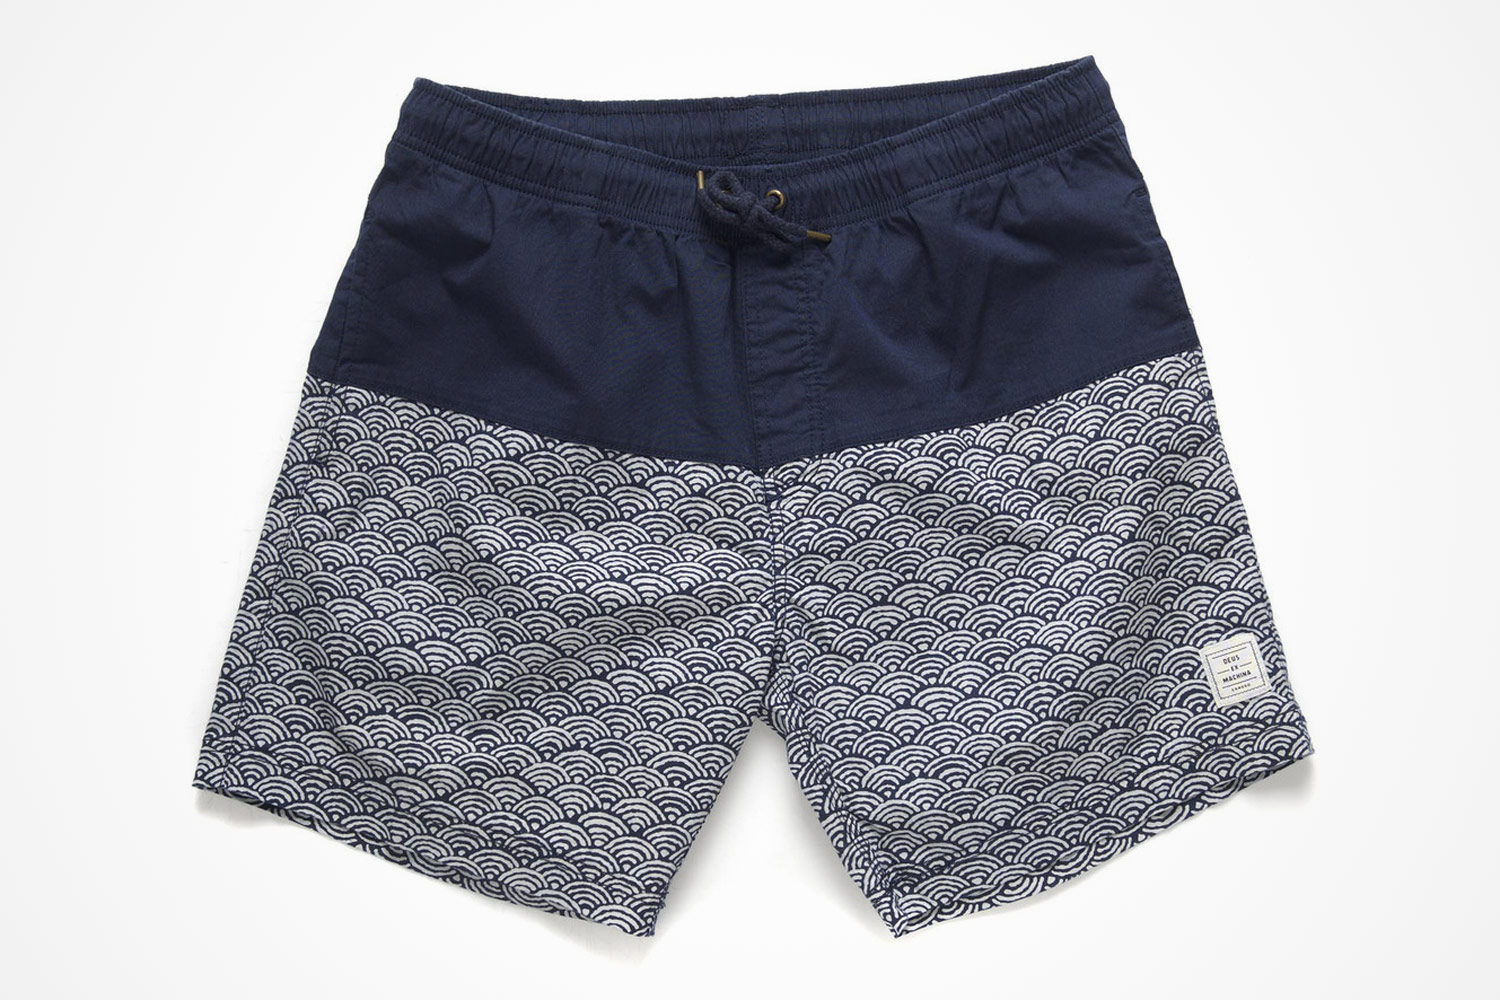 eed147753b The Coolest Swim Shorts For The Hottest Days - HEY GENTS